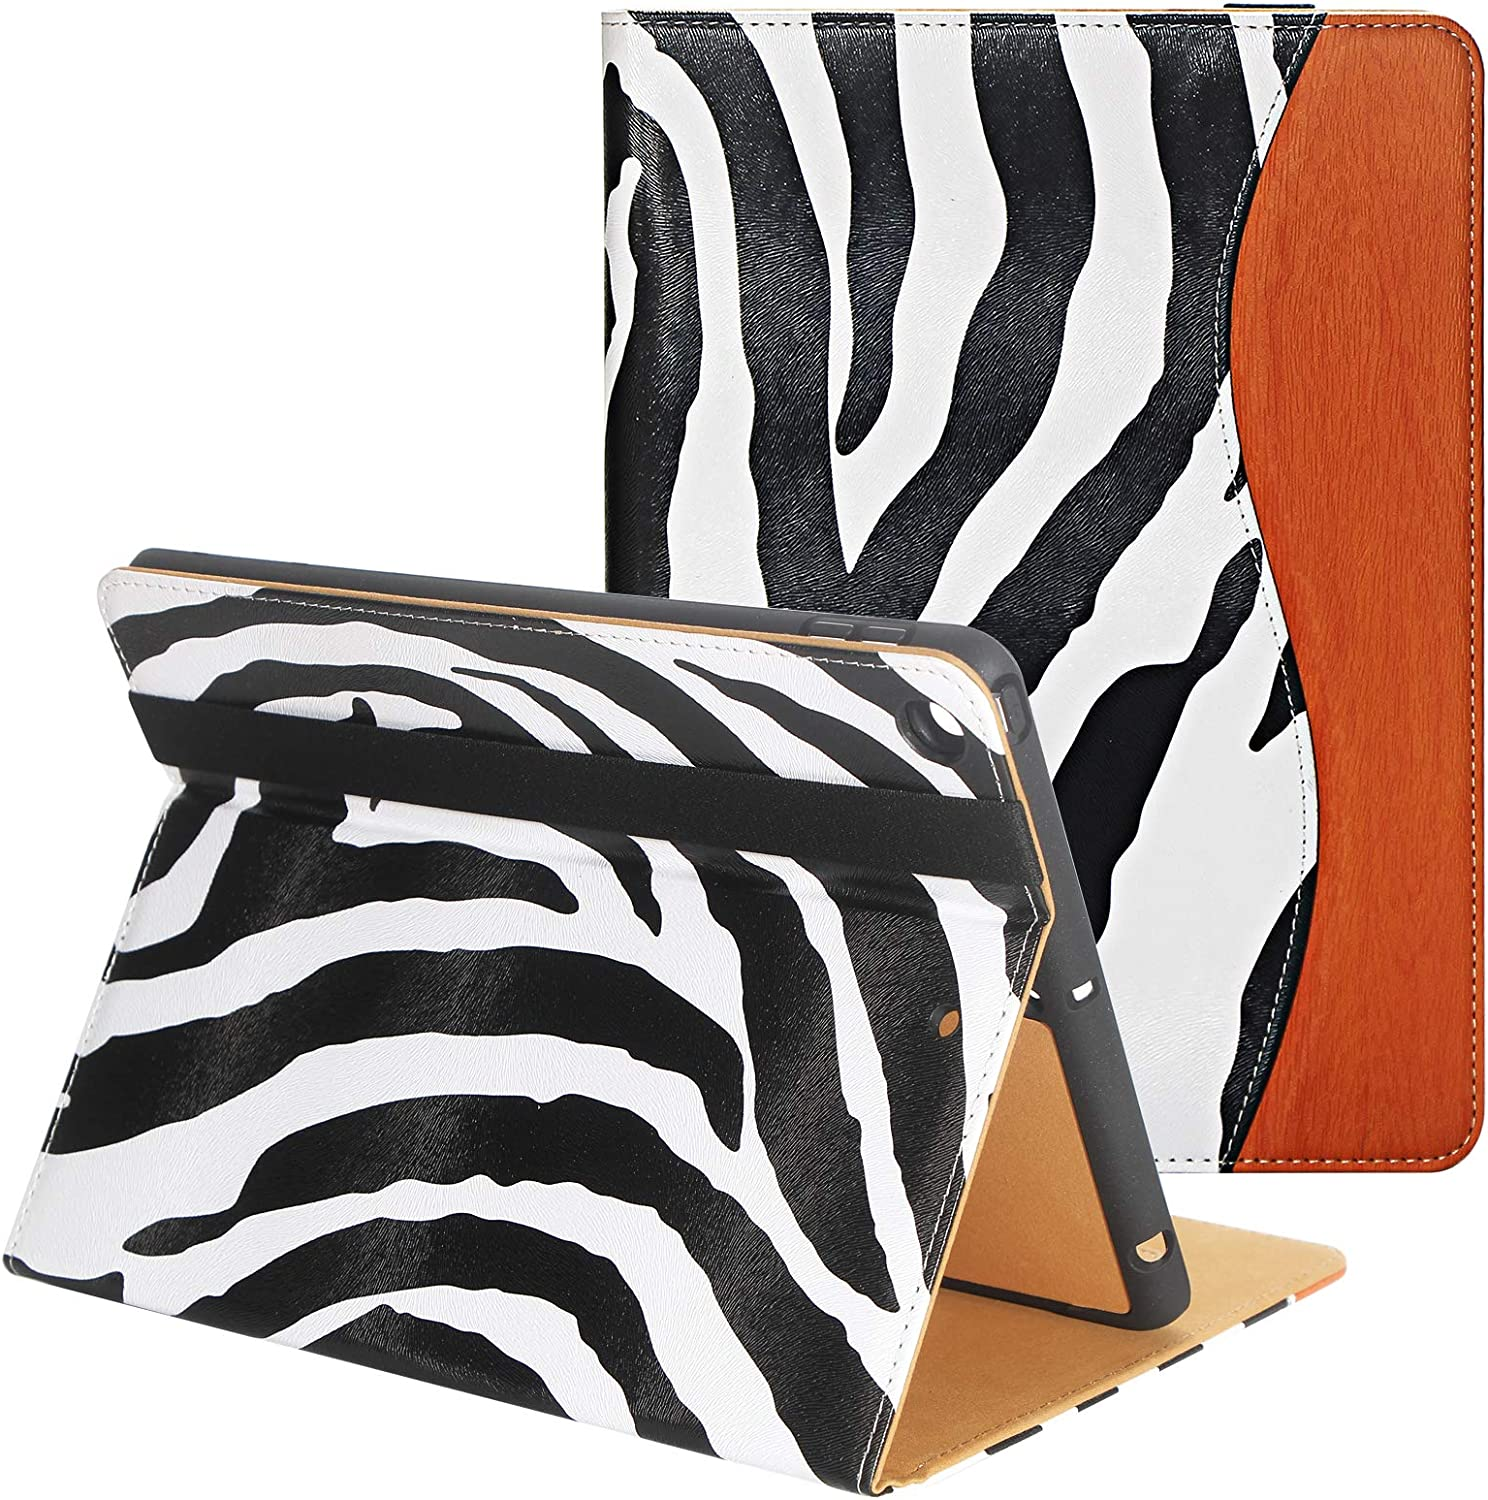 CASIRENA Zebra case for ipad 10.2 (8th/7th Gen), iPad 10.2 Inch Cover for iPad 8/7 Generation(2020/2019), with Built-in Pencil Holder&Smart Stand, Fully Covered Protect Corners, Auto Wake/Sleep